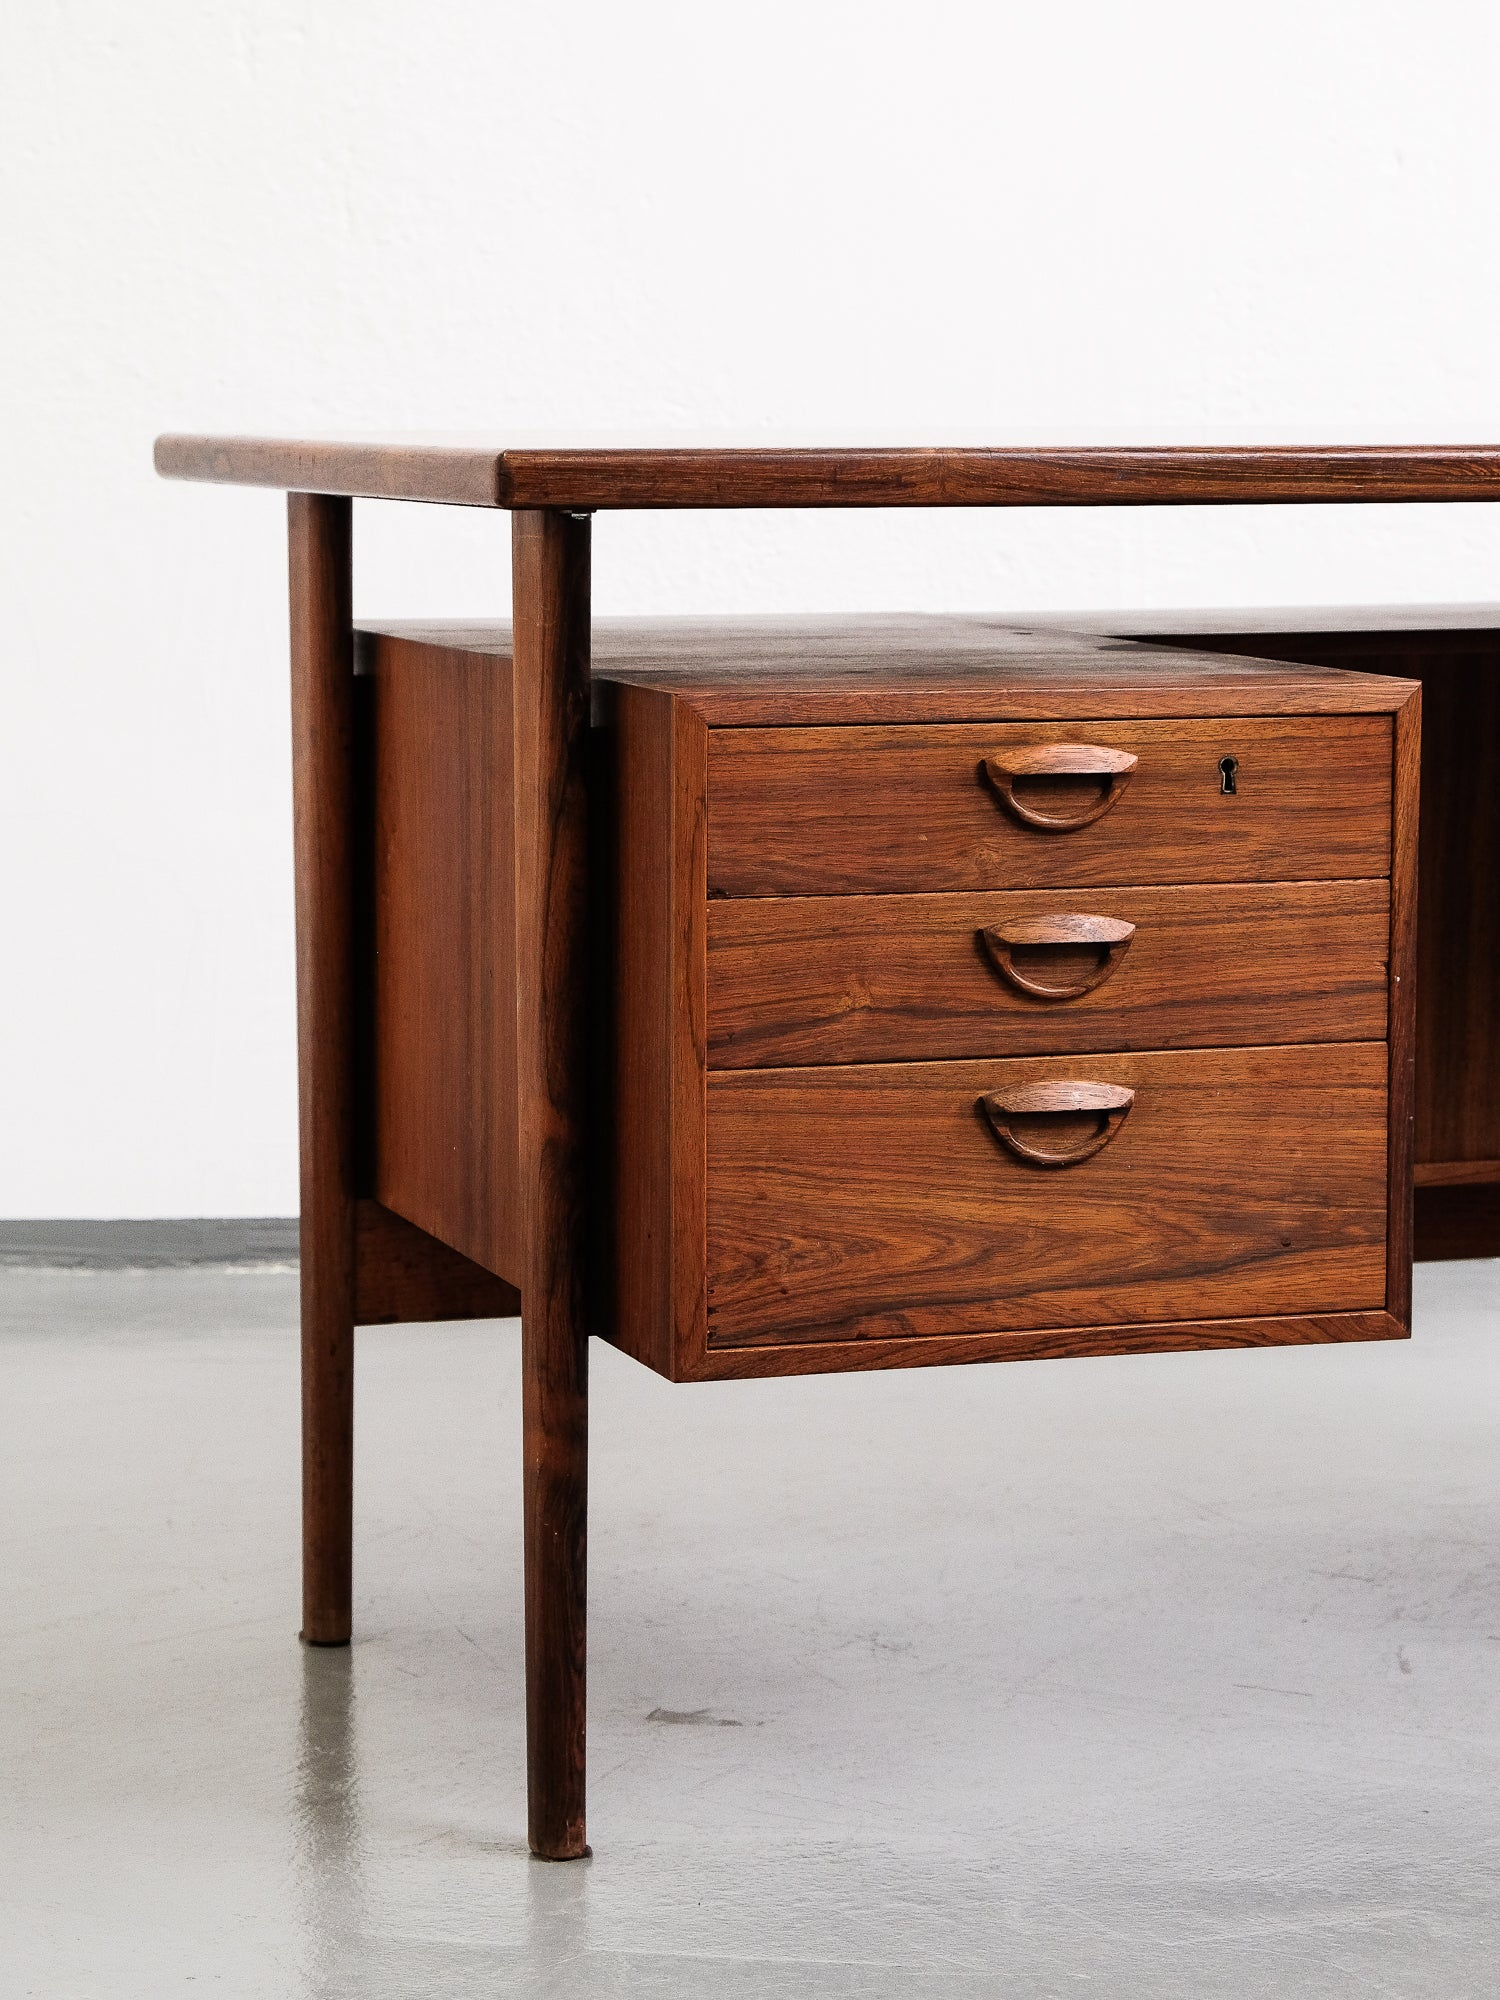 Danish 'FM60' Desk by Kai Kristiansen for Feldballes Møbelfabrik, 1960s